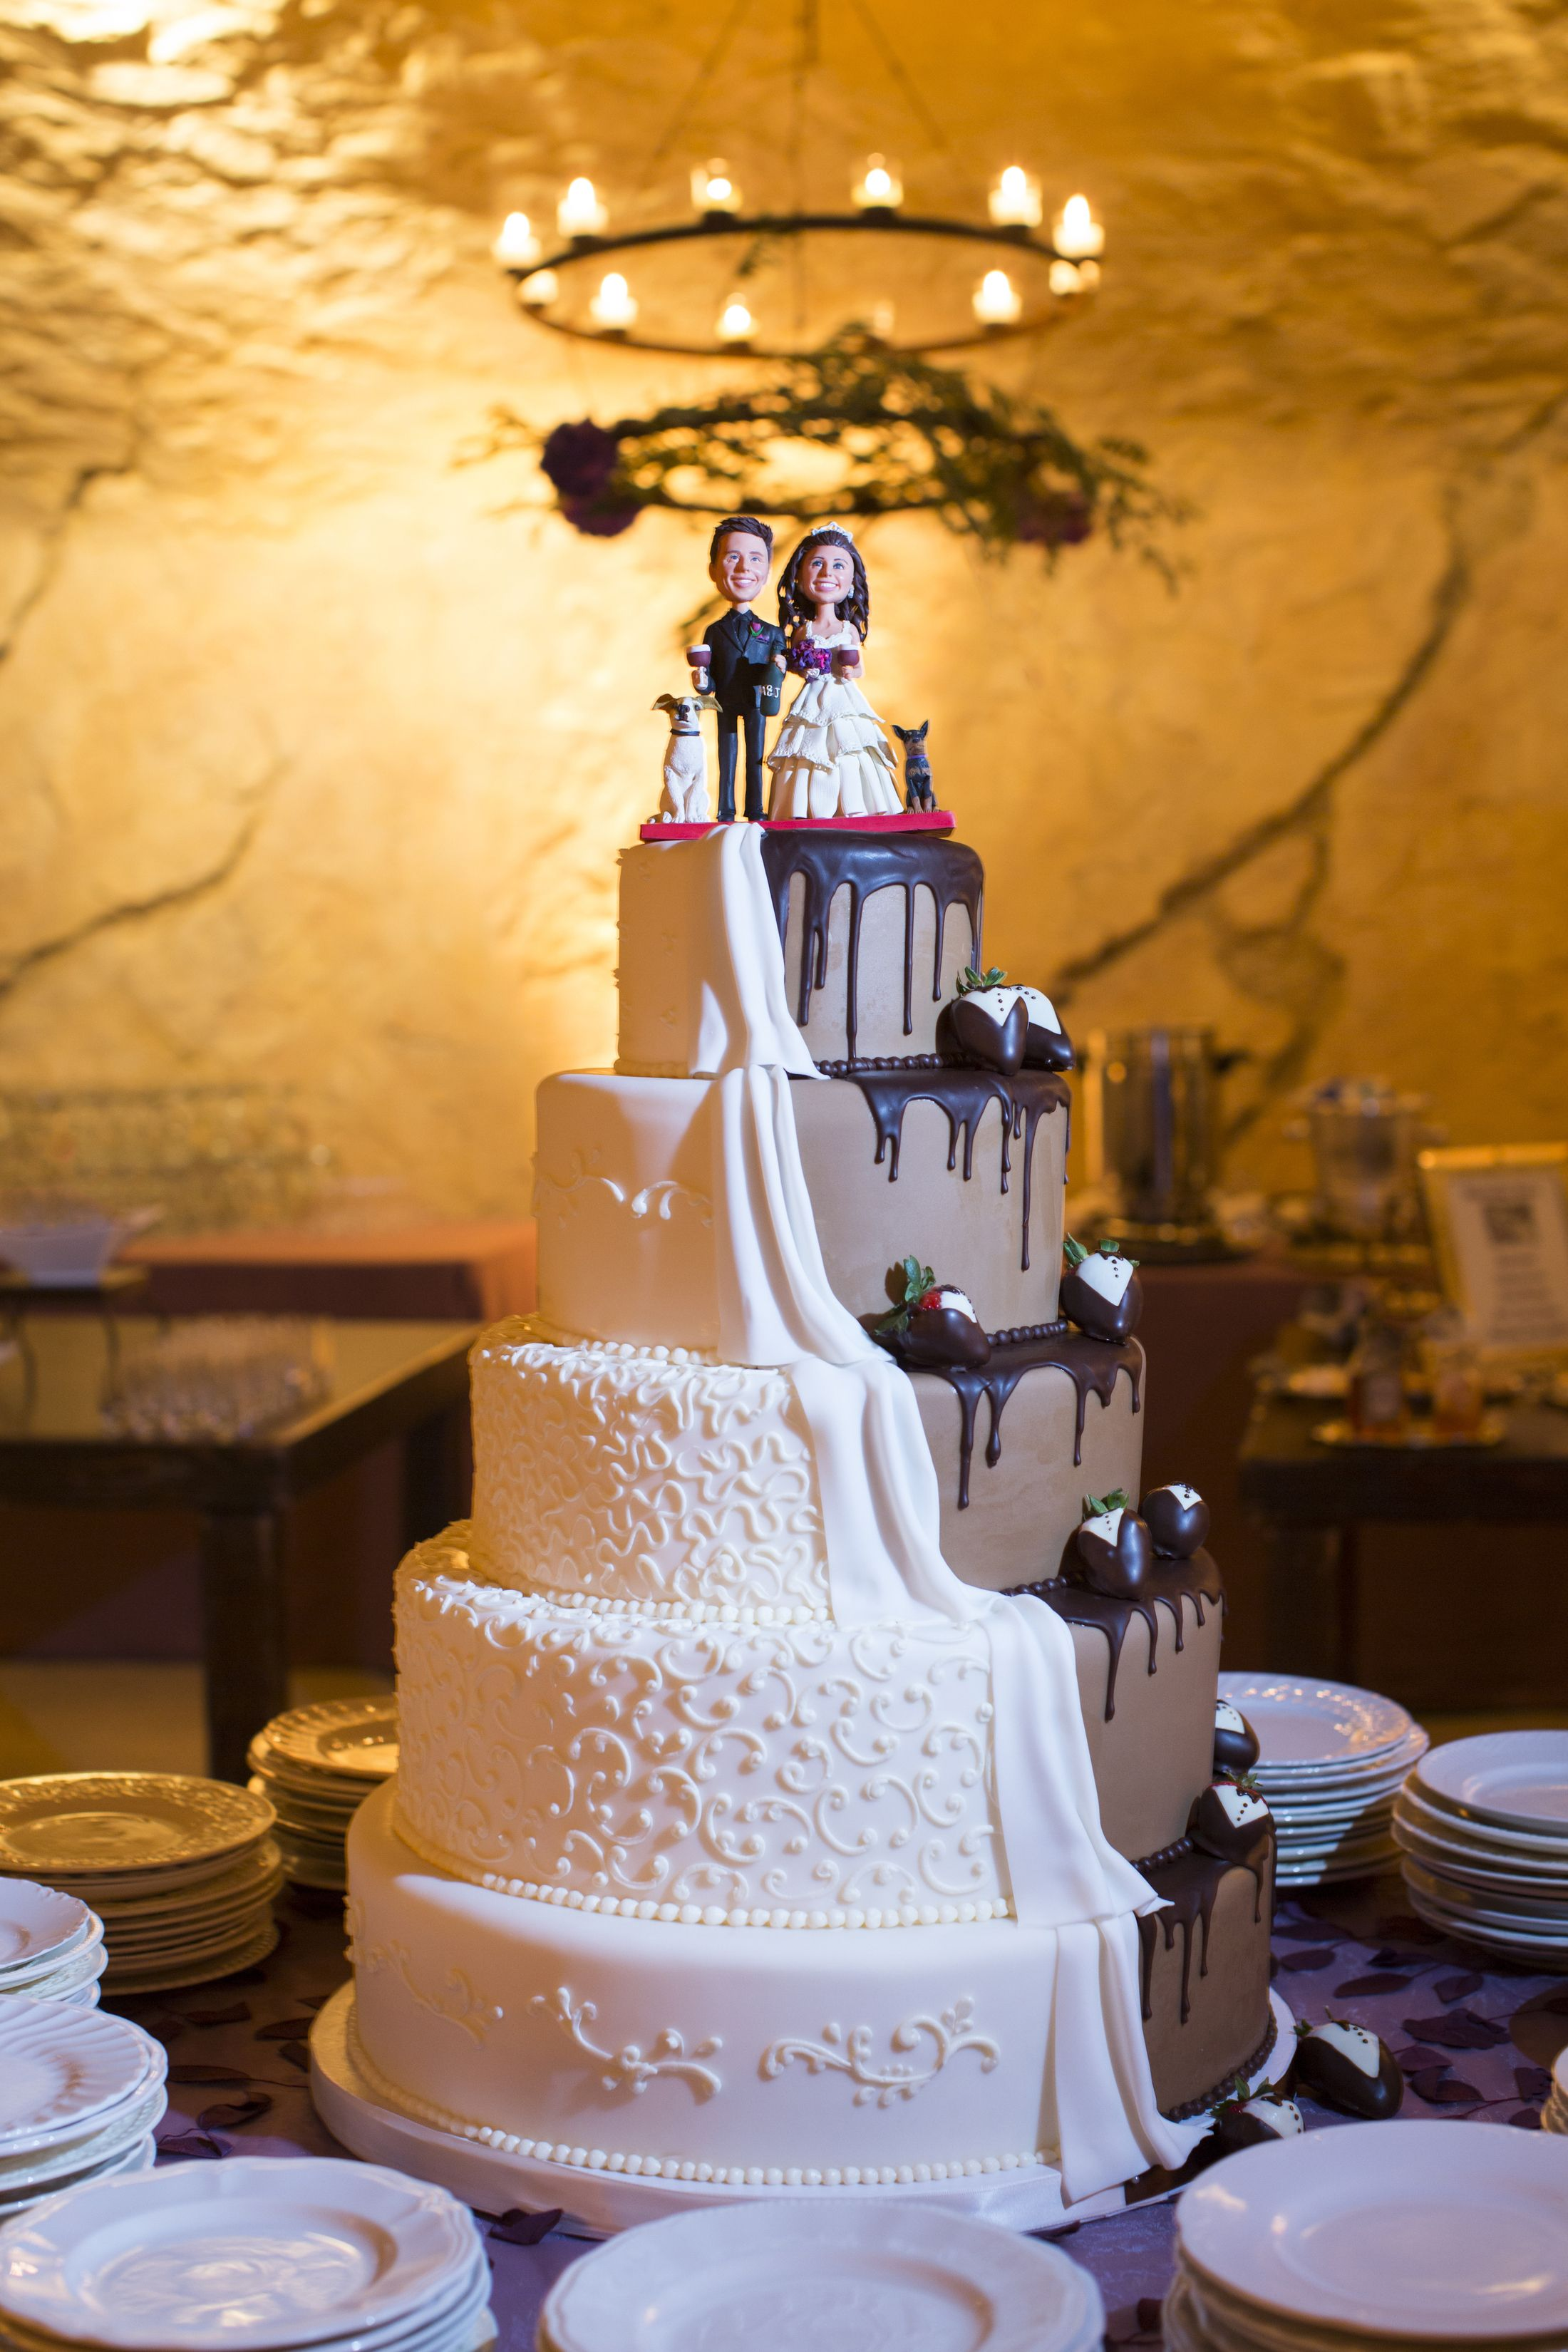 Traditional On One Side And Creative The Other Is This Wedding Cake For Jeff Dunham Married To Audrey Murdick Vanilla Sponge Lemon Mousse